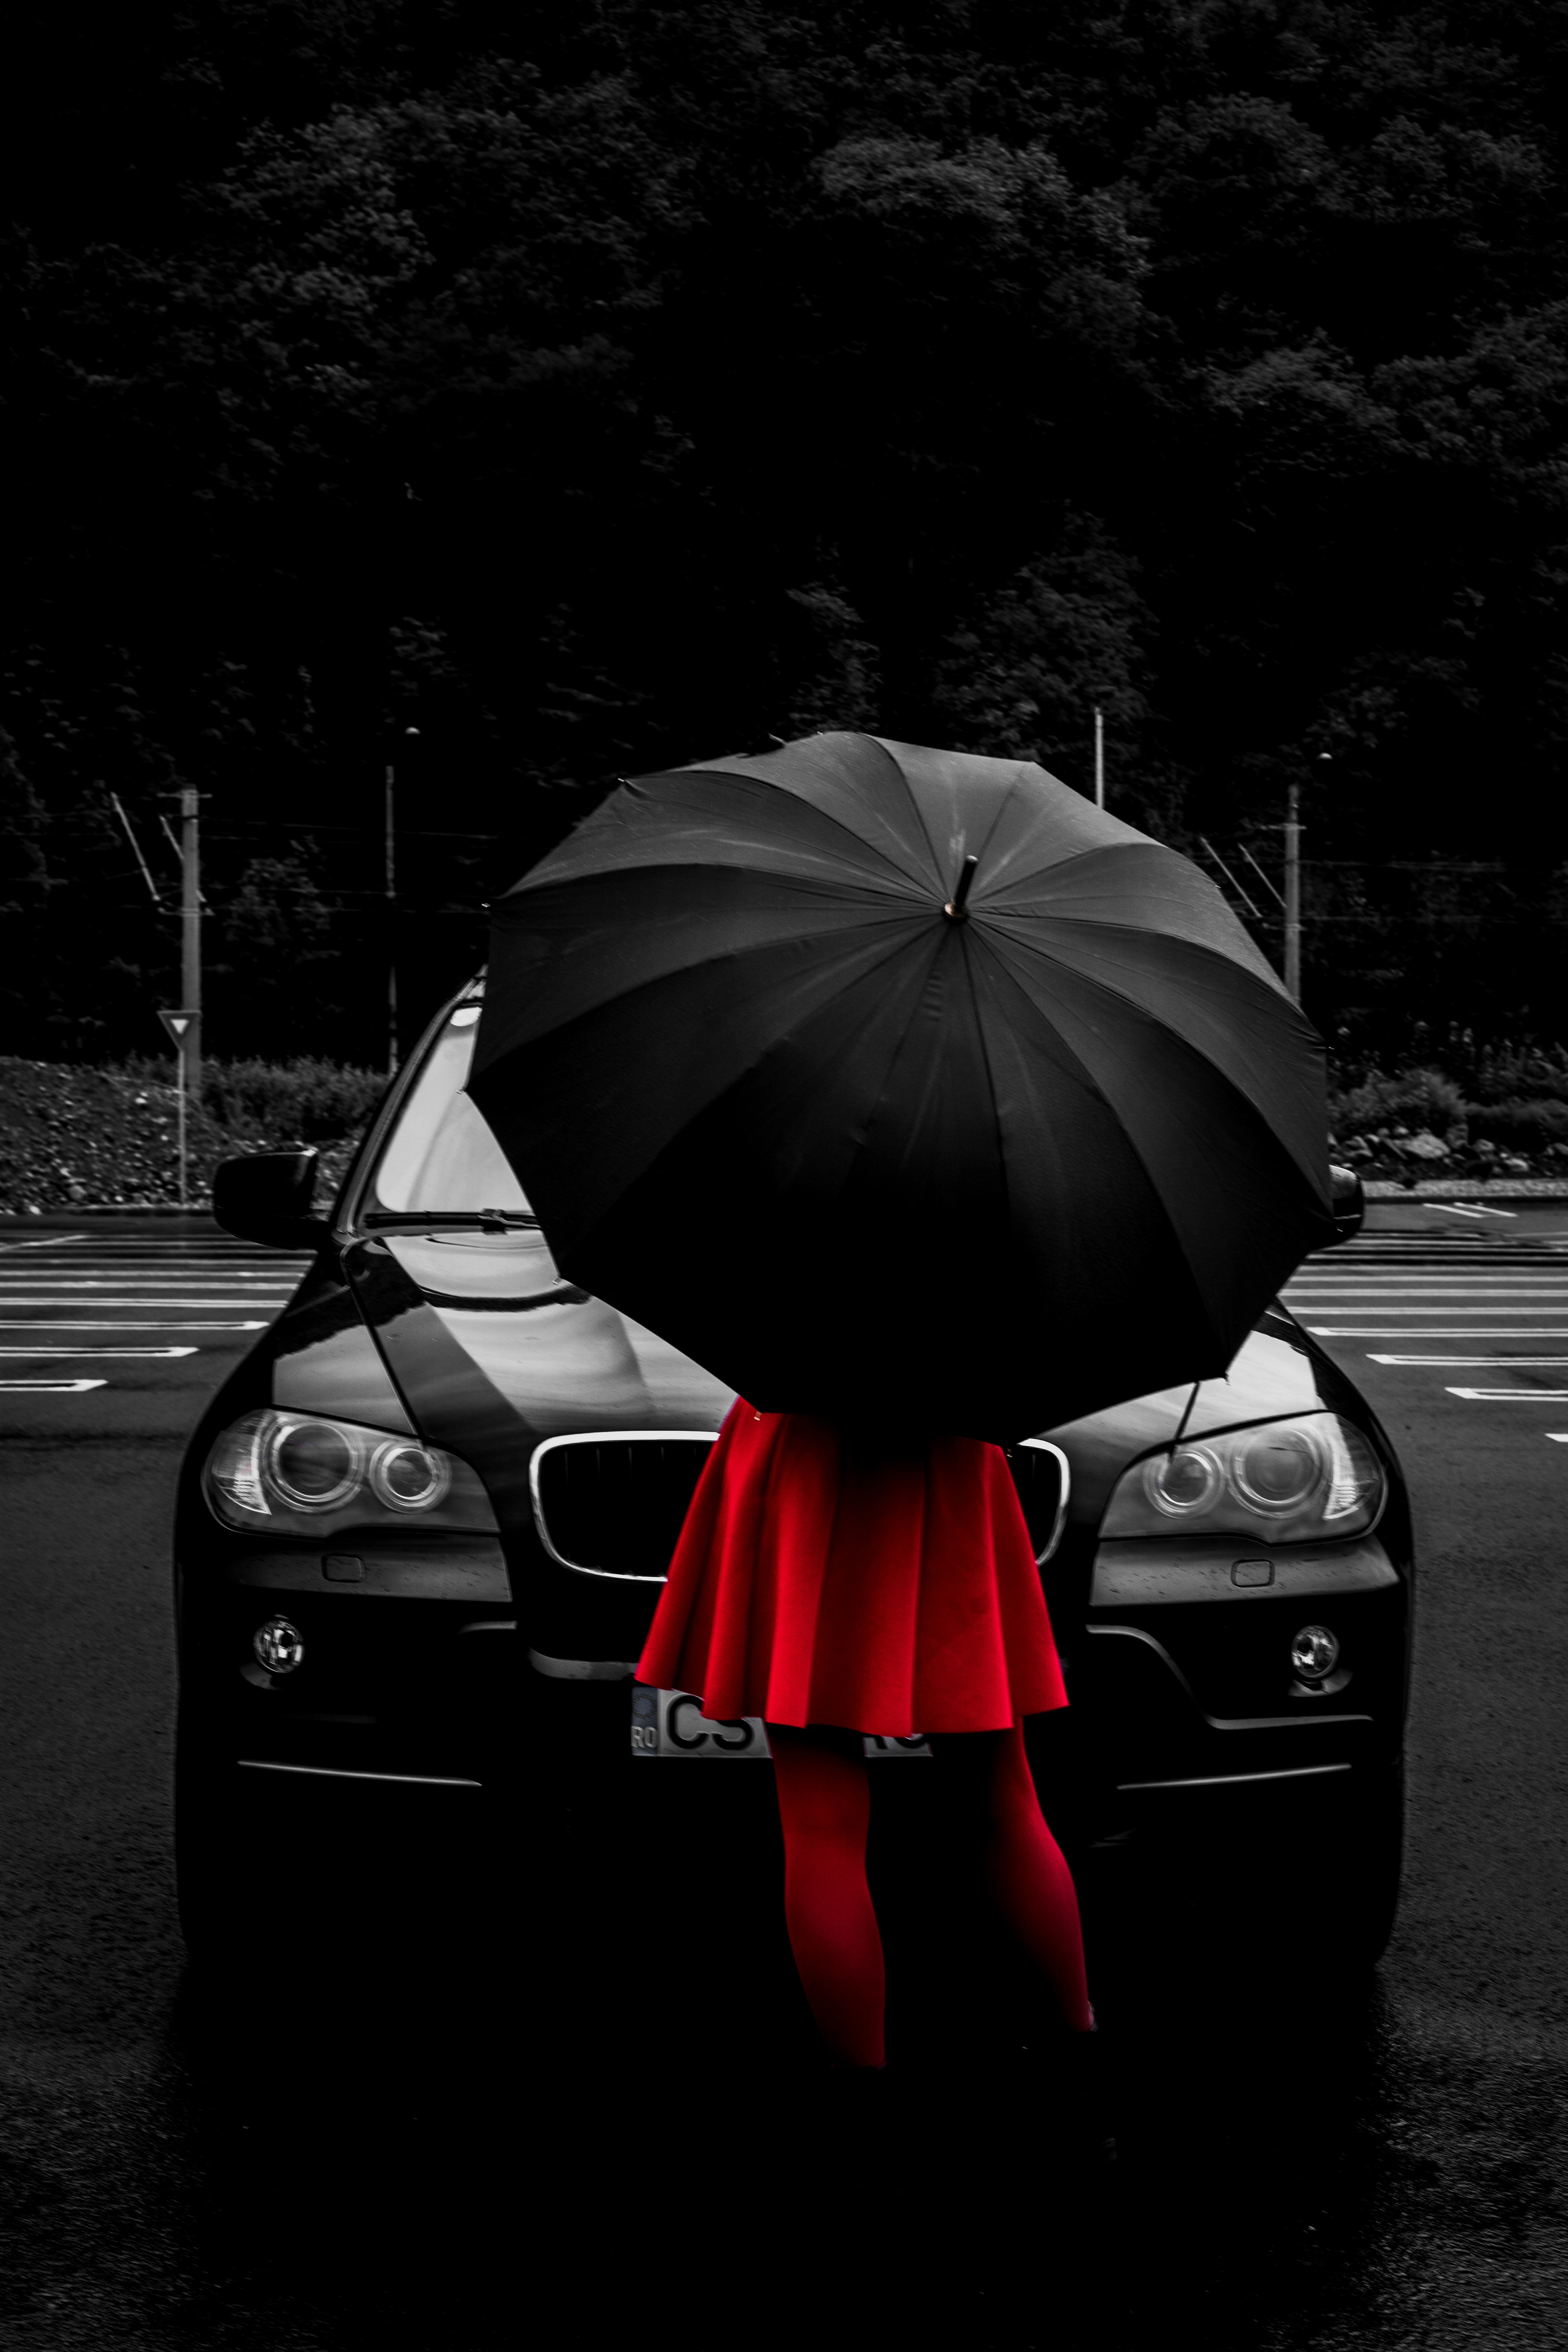 black car facing camera with female in red dress and red tights holding black umbrella standing facing car